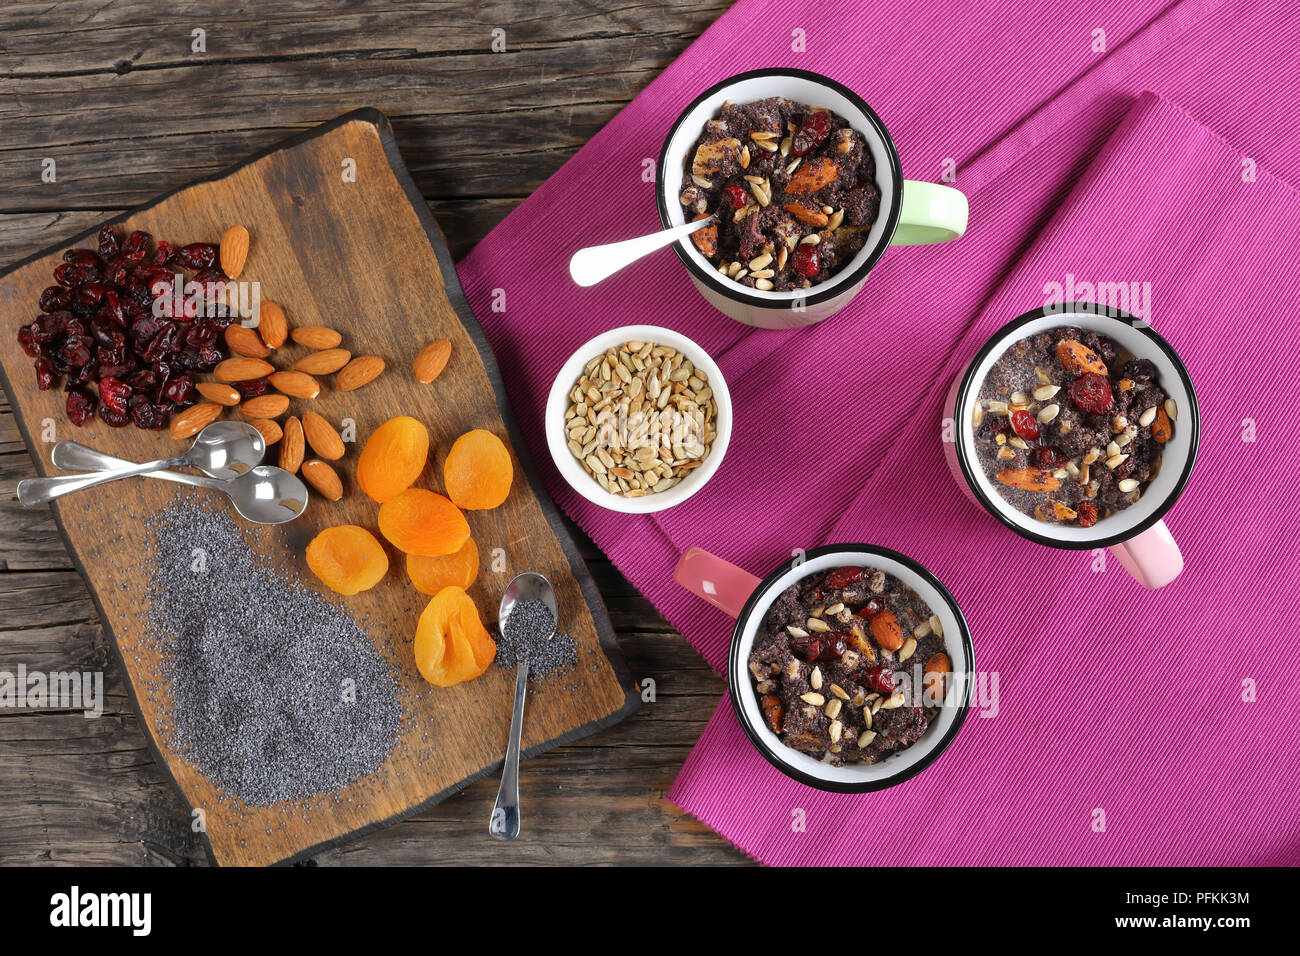 delicious christmas dessert or kutya of poppy seeds mixed with cooked whole wheat, dried fruits and nuts served in cups. ingredients on cutting board, - Stock Image